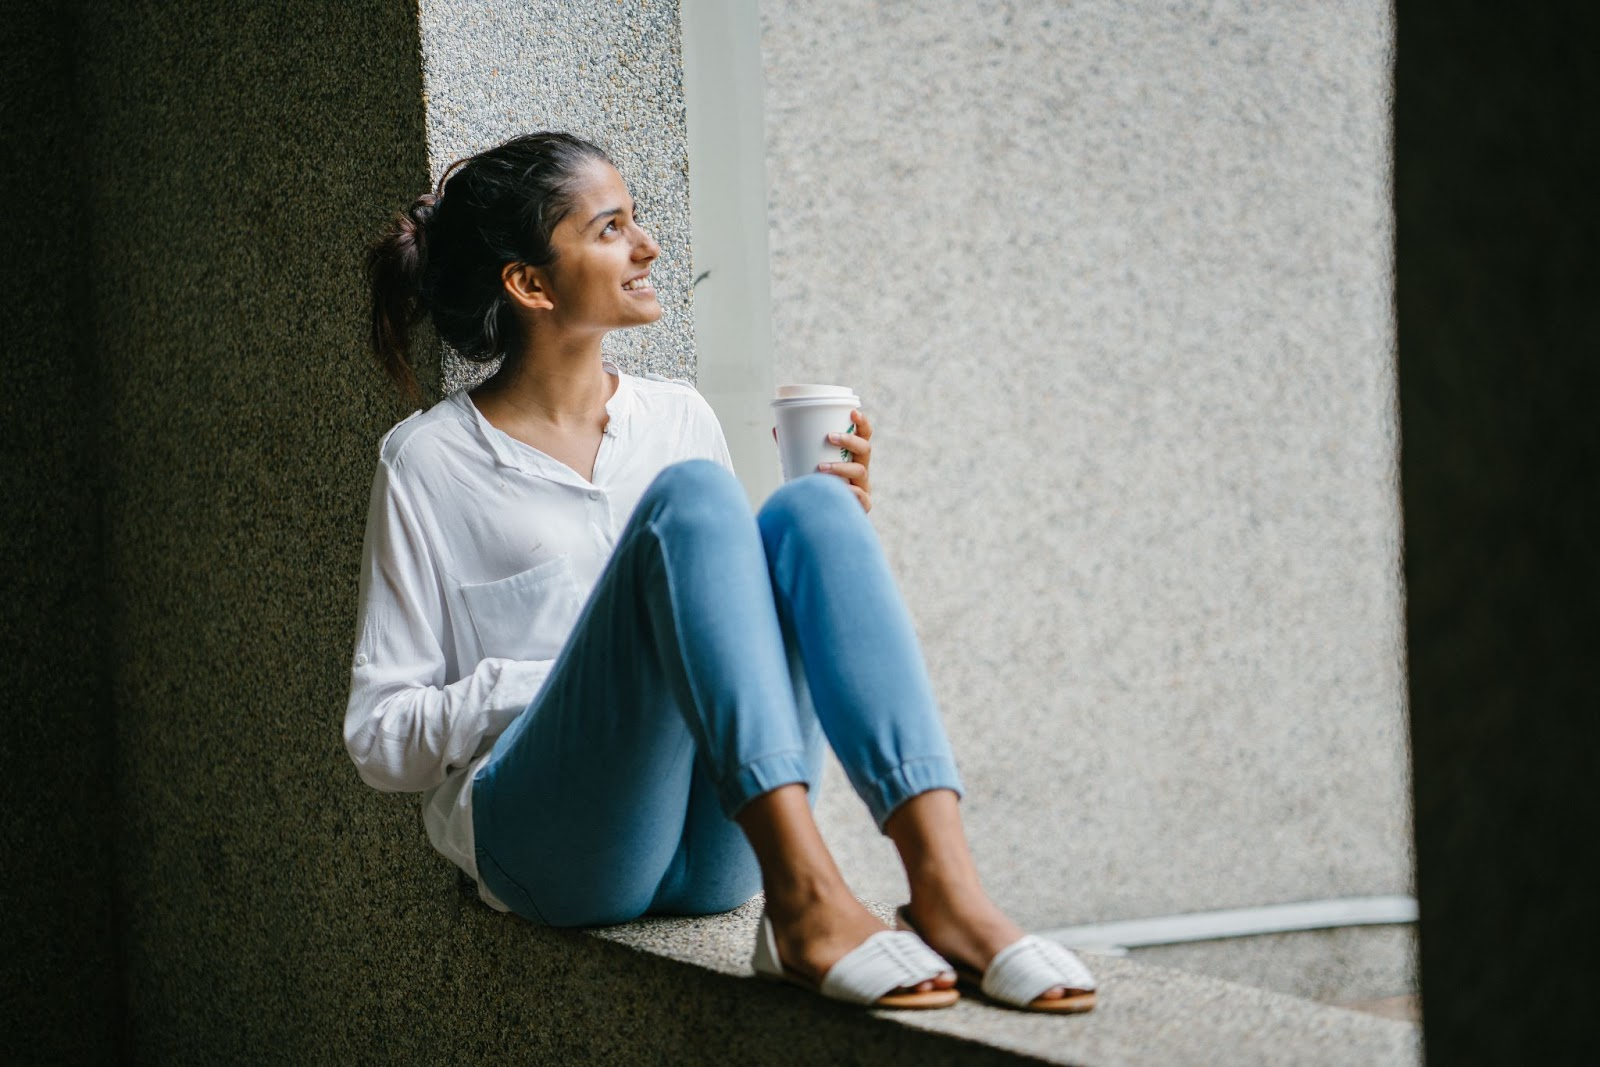 What Are the Symptoms of Low Estrogen?